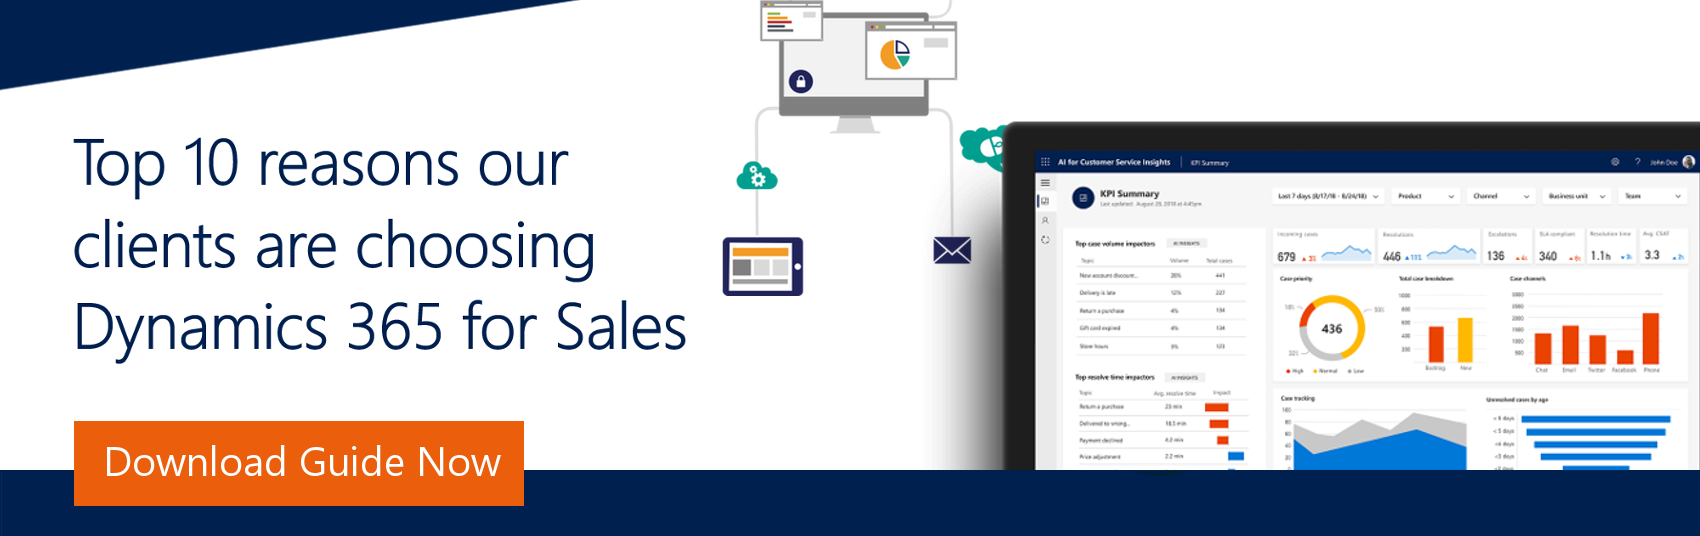 Ebook top 10 reasons our clients are choosing Dynamics 365 for Sales CRM